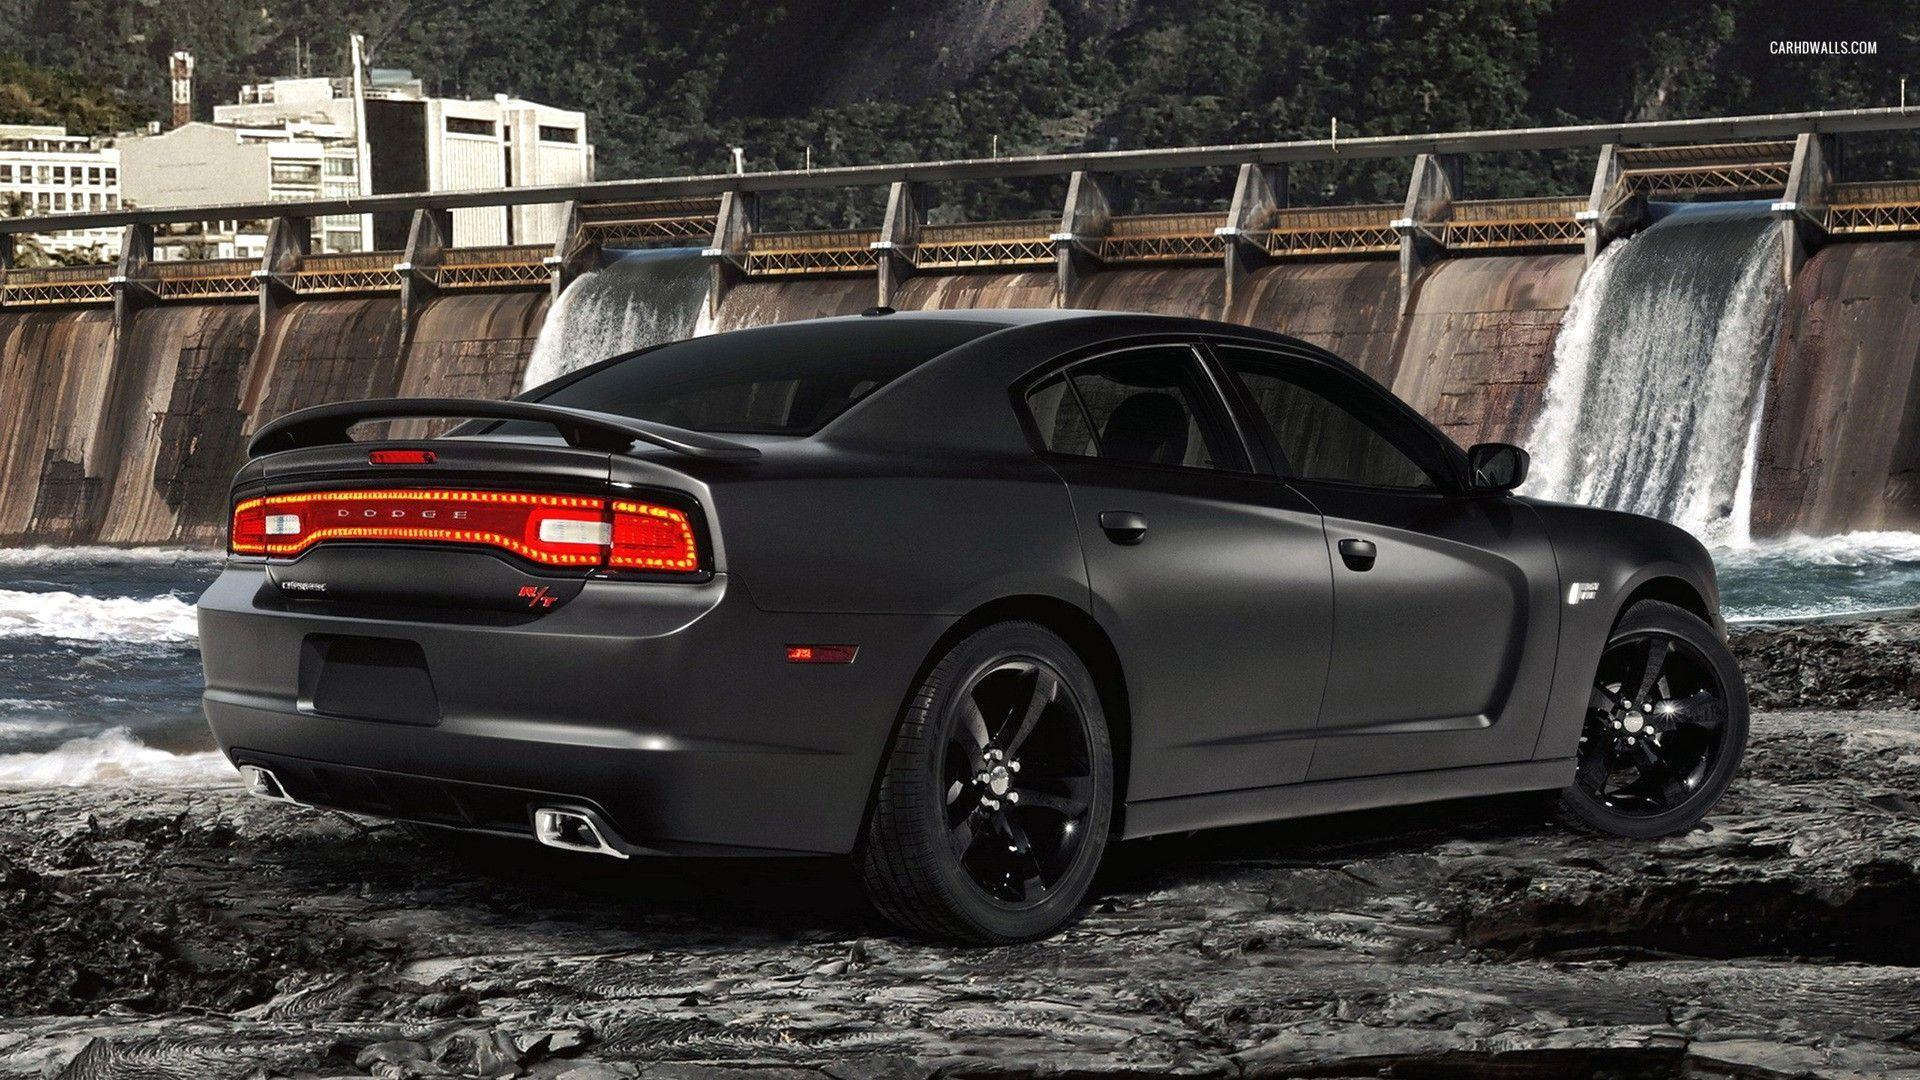 2016 Dodge Challenger Black Wallpapers Wallpaper Cave